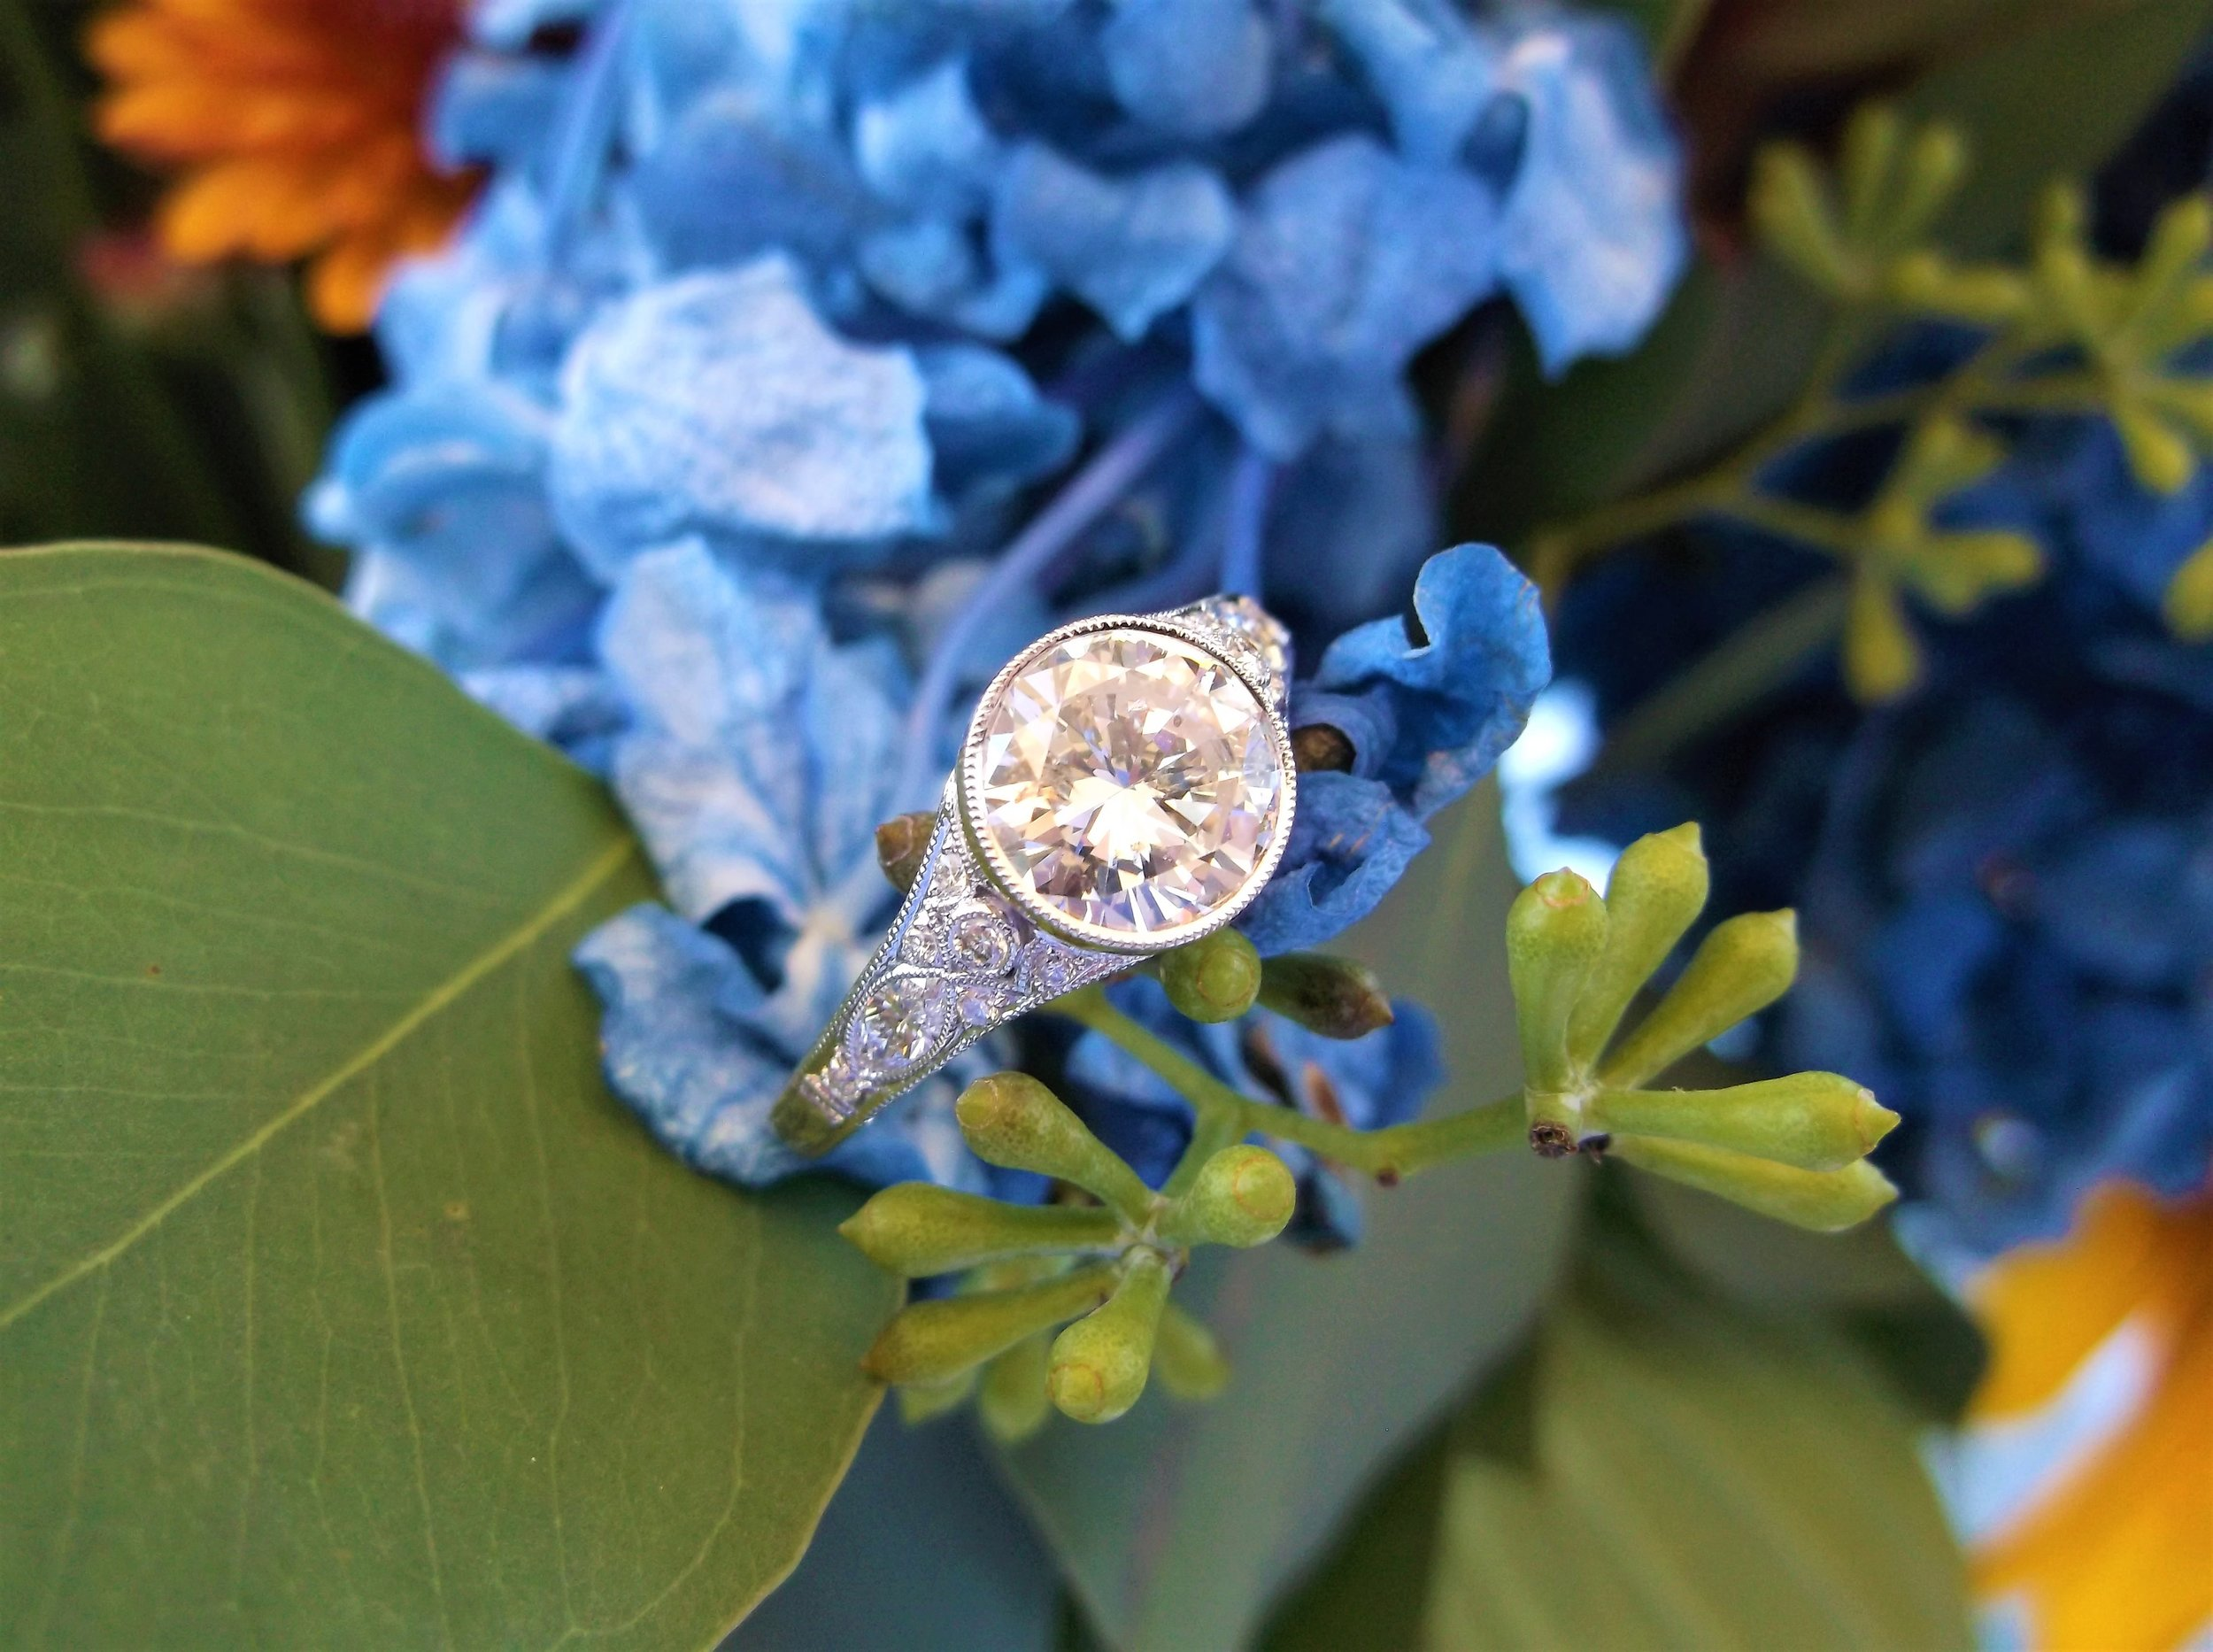 SOLD - Beautiful 1.42 carat round brilliant cut diamond set in a lovely diamond and white gold bezel setting.